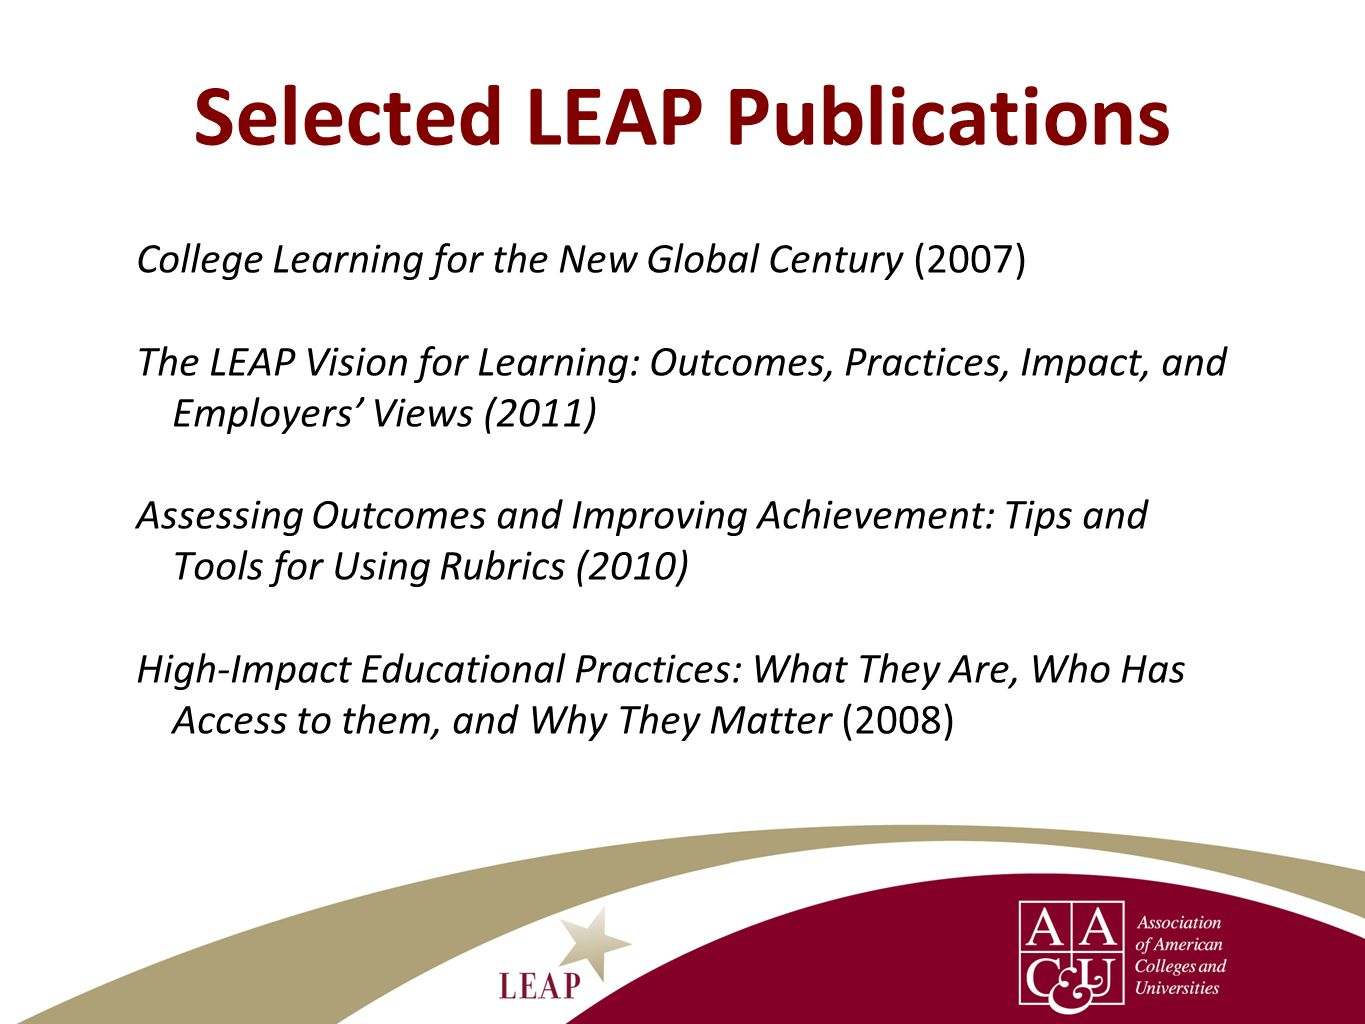 Selected LEAP Publications College Learning for the New Global Century (2007) The LEAP Vision for Learning: Outcomes, Practices, Impact, and Employers